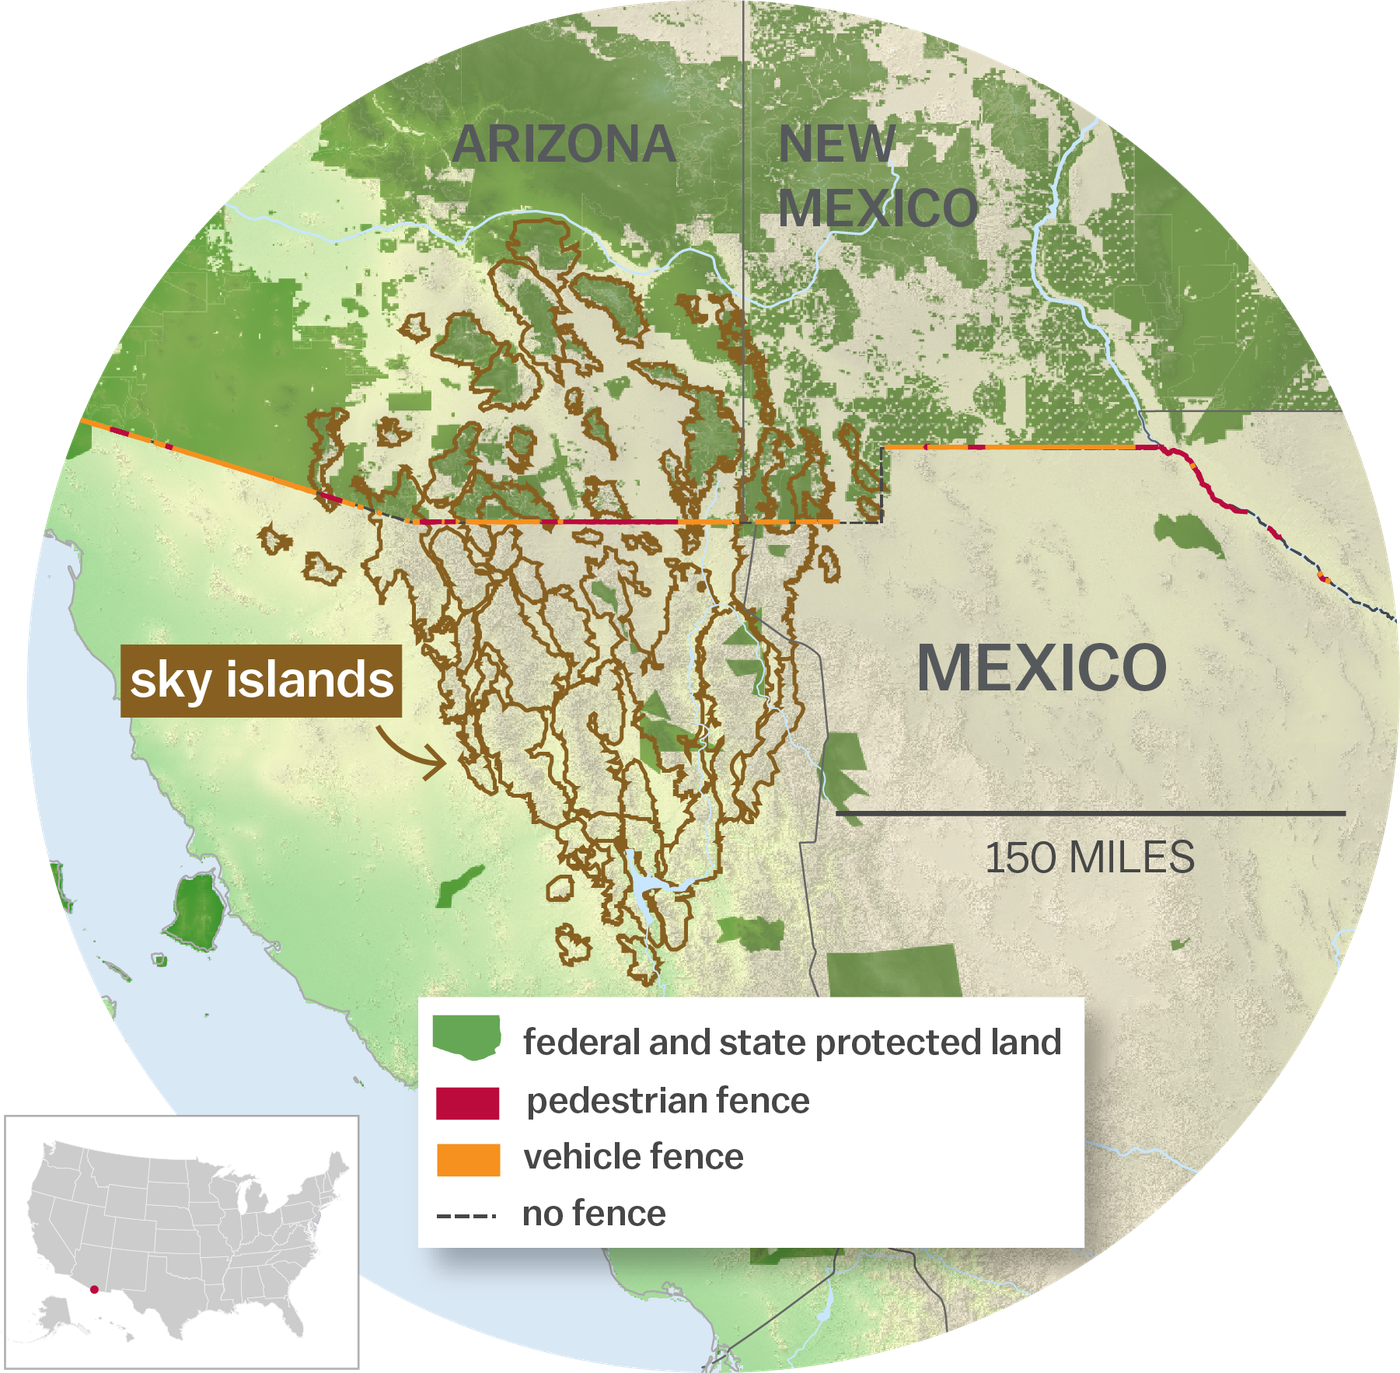 Trump's border wall is an ecological disaster - Vox on united states rail line map, united states european union map, united states transcontinental railroad map, united states fencing map, united states death penalty map, united states oil pipeline map, united states immigration map, united states illegal borders crossings, united states mexico map, united states natural gas pipeline map, united states customs info,